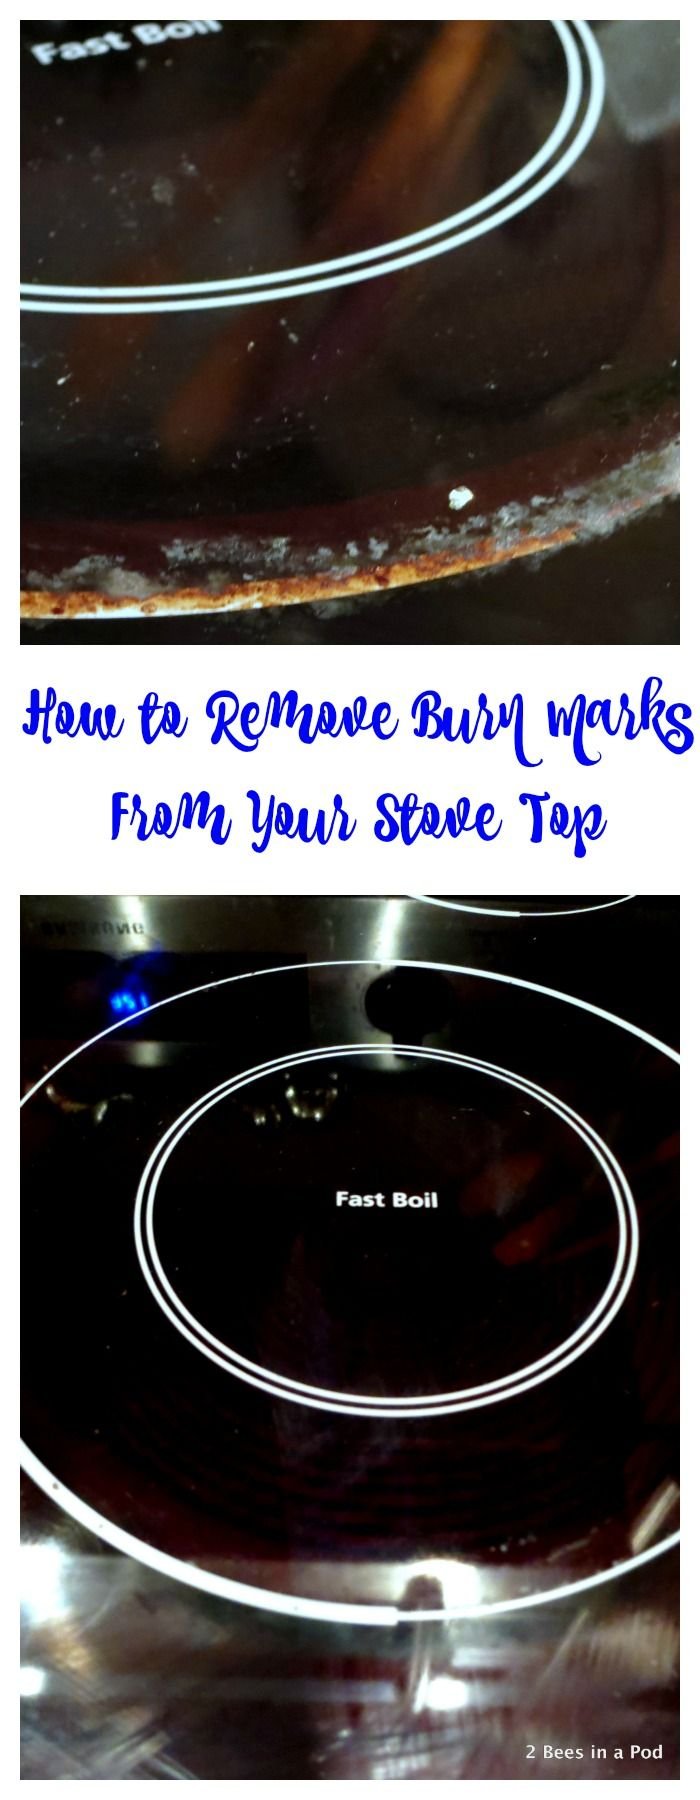 How to clean burn marks off your stove